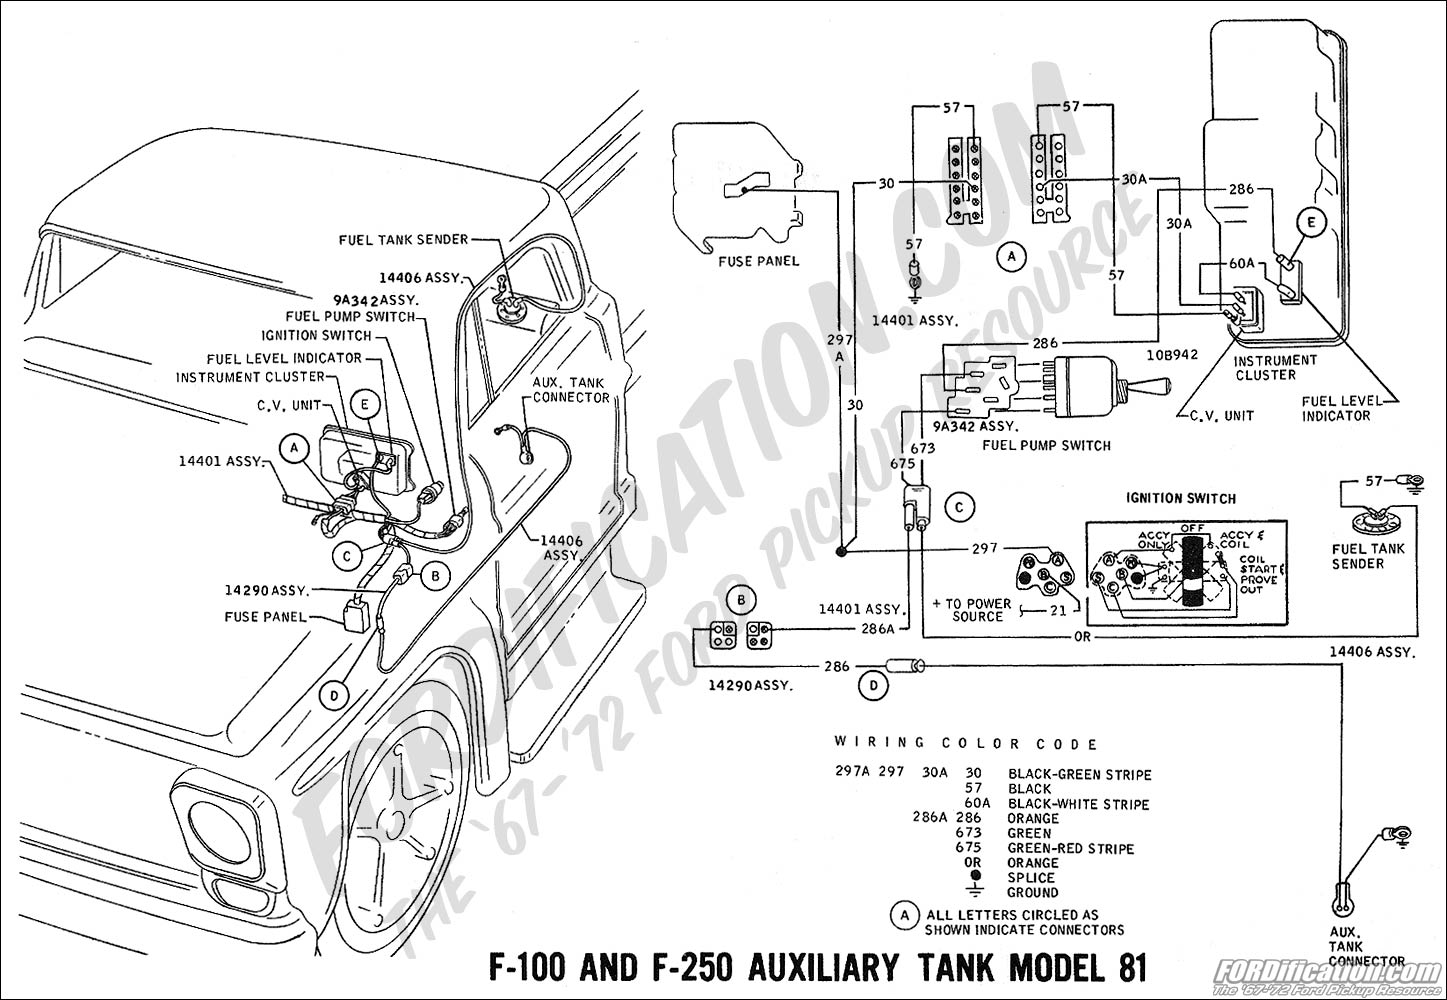 wiring_69aux fuel 69 f100 wiring diagram 1973 ford f100 wiring diagram \u2022 wiring Ford E-350 Fuse Box Diagram at webbmarketing.co